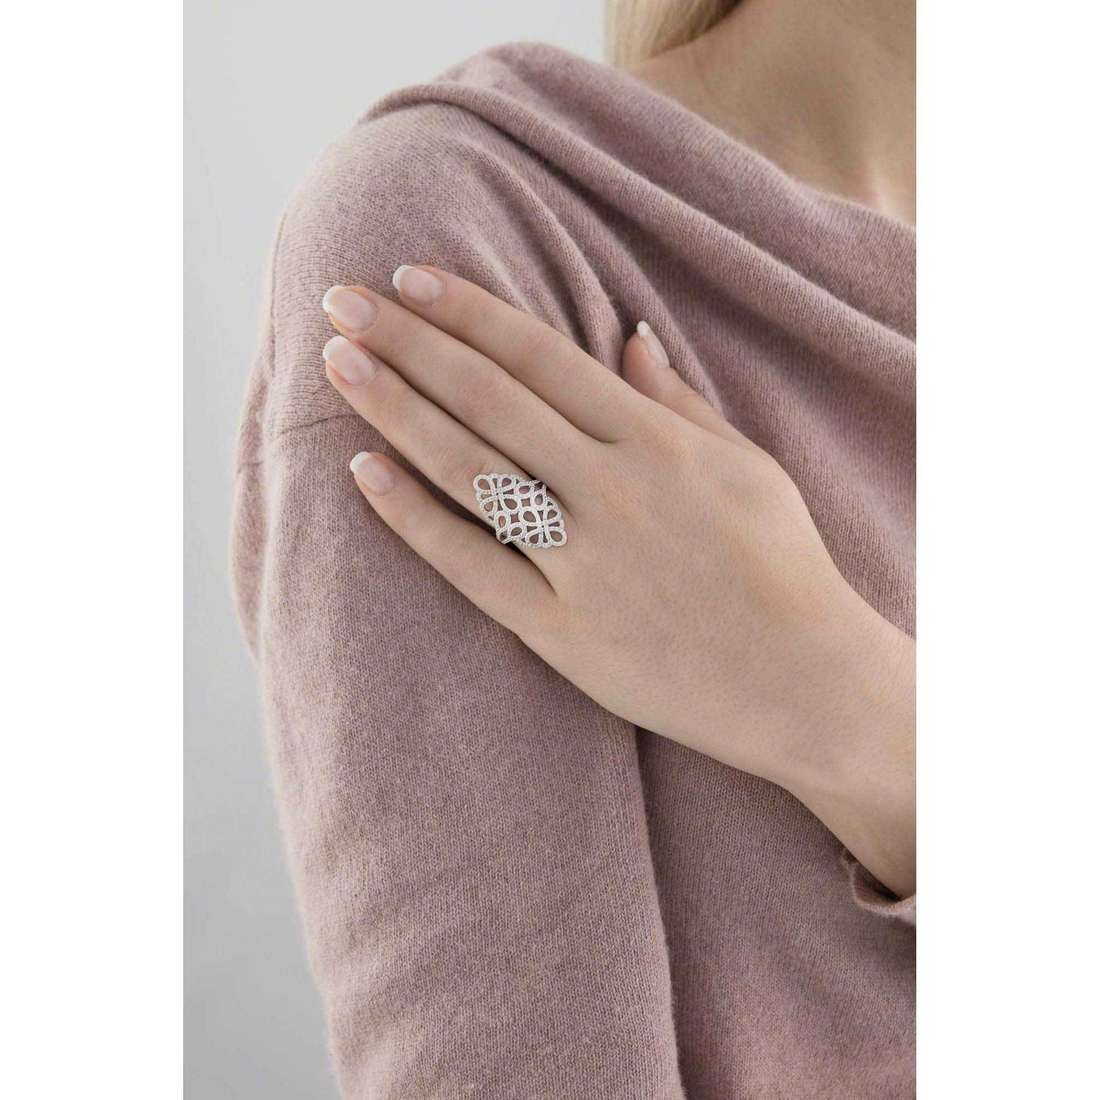 Bliss rings Renaissance woman 20063137 indosso